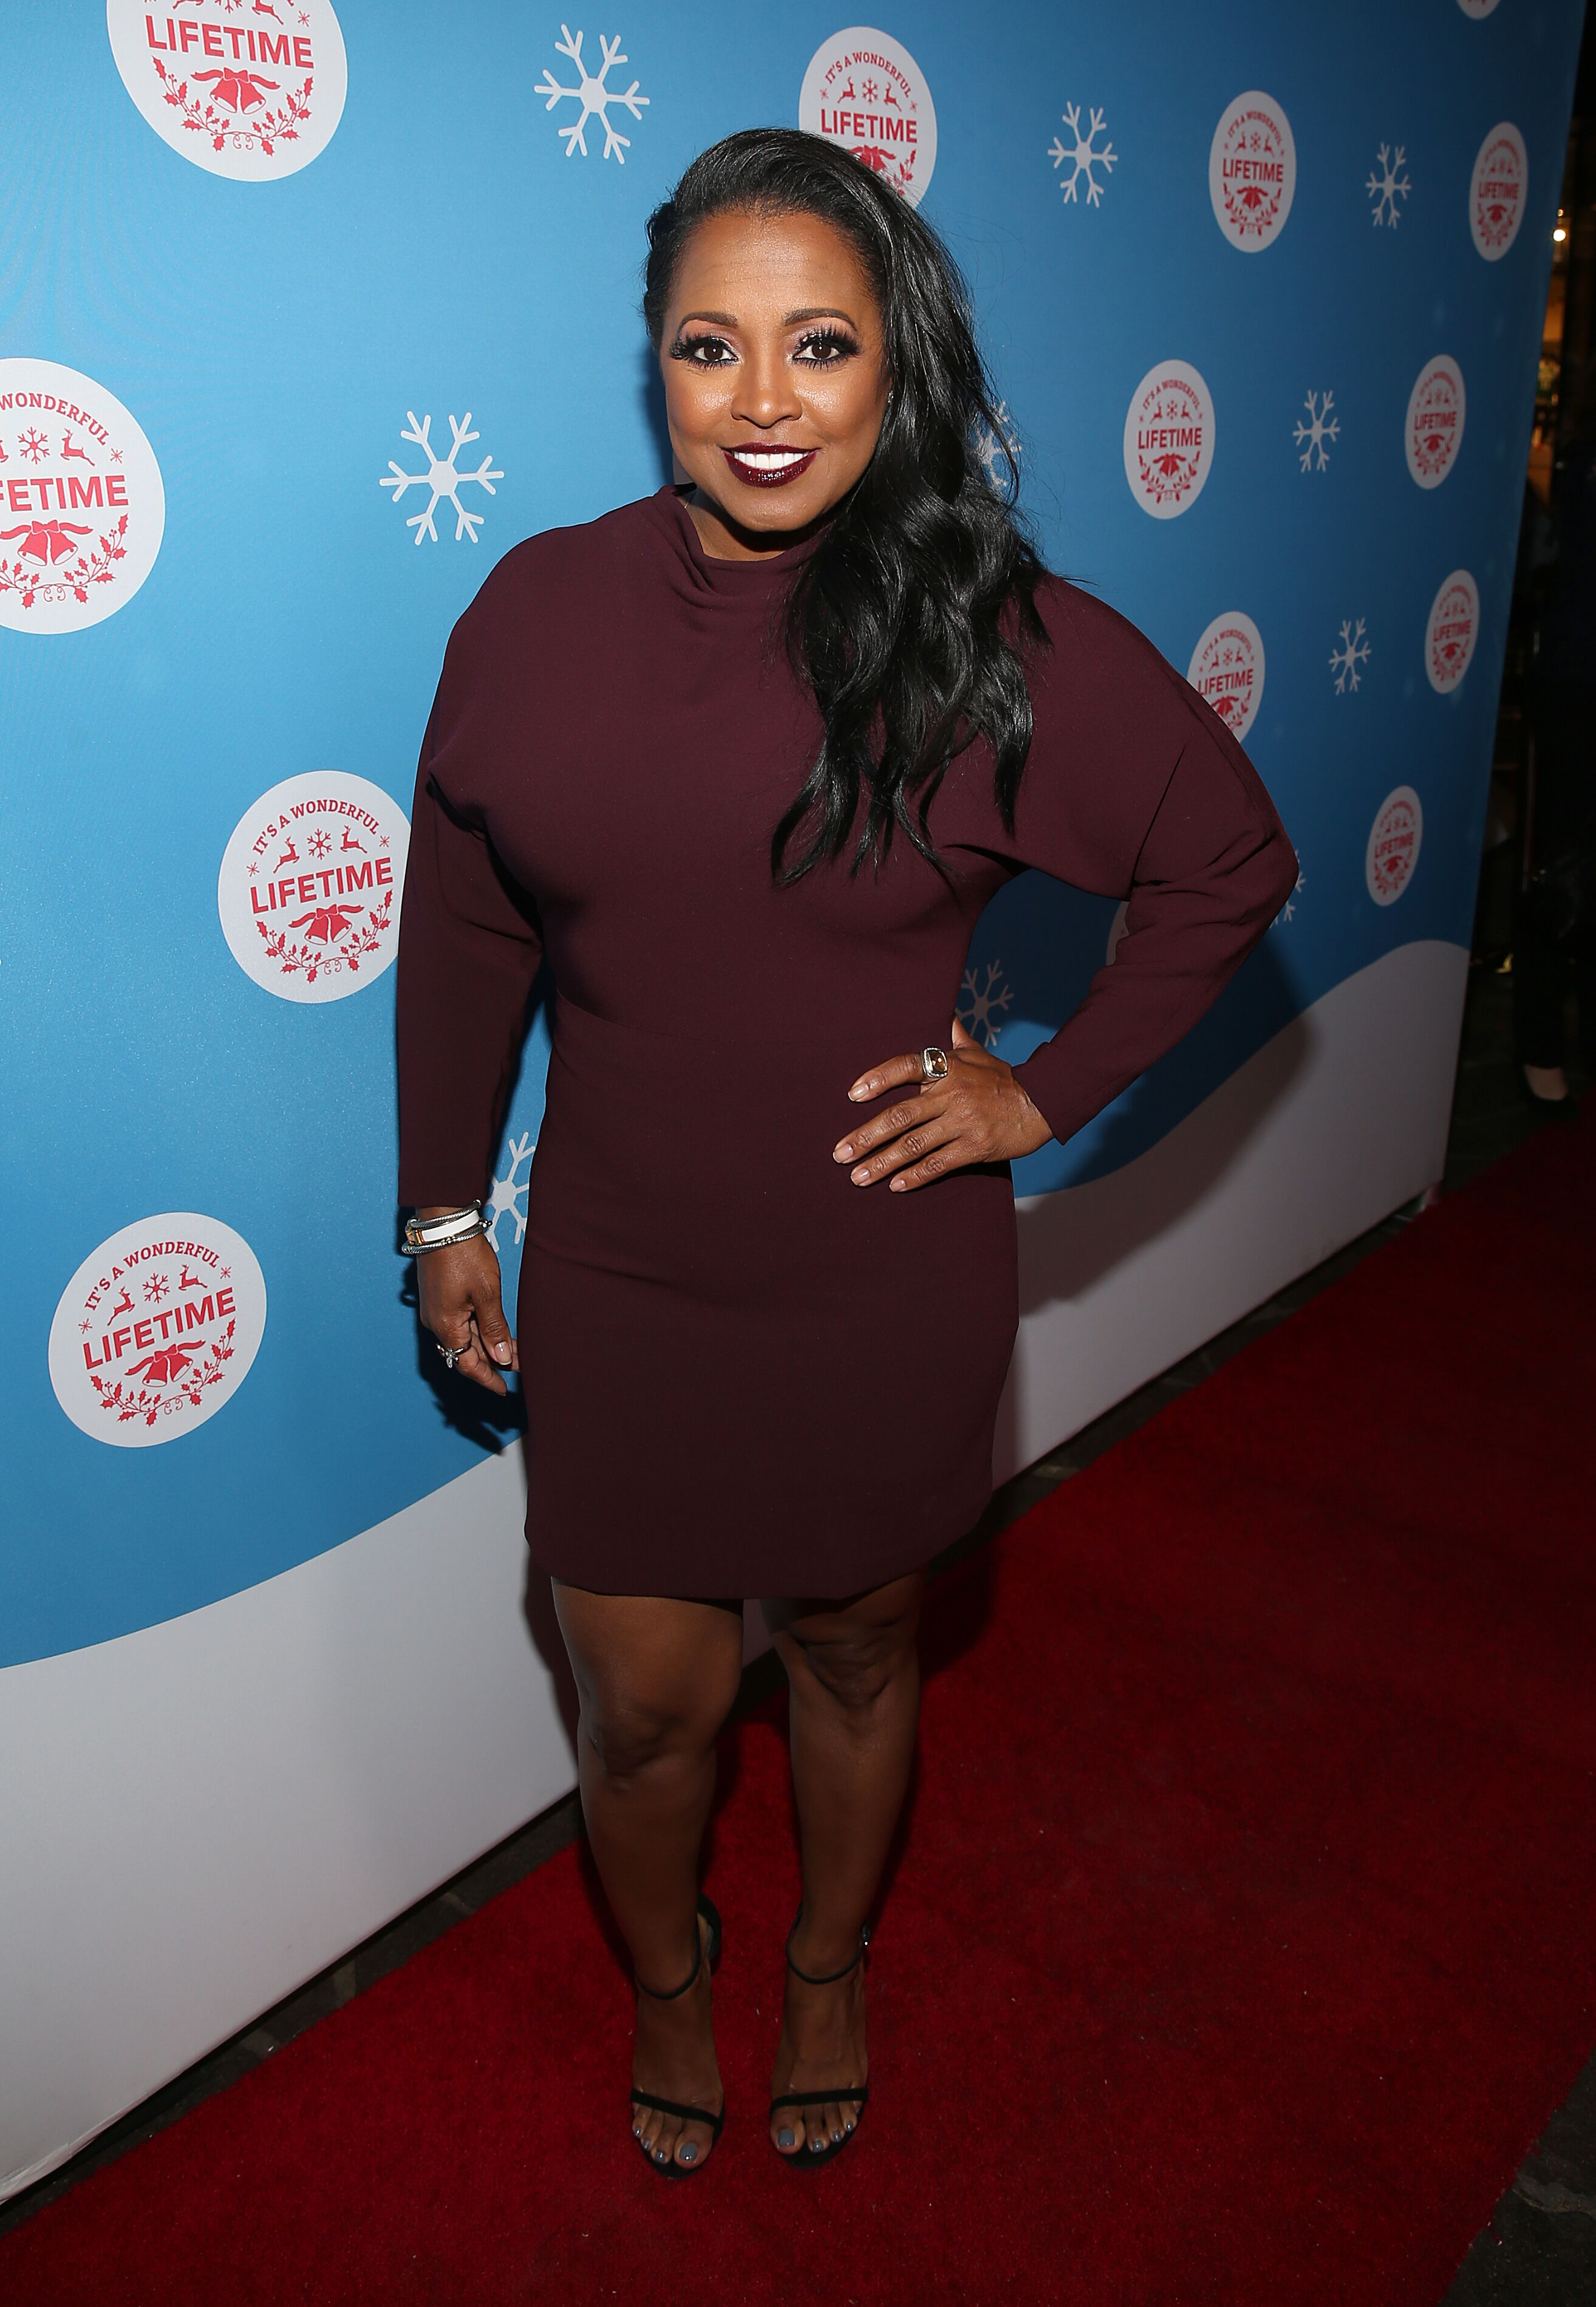 """Keshia Knight Pulliam attends the VIP opening night of the life-sized gingerbread house in celebration of """"It's A Wonderful Lifetime"""" at The Grove on November 14, 2018. 